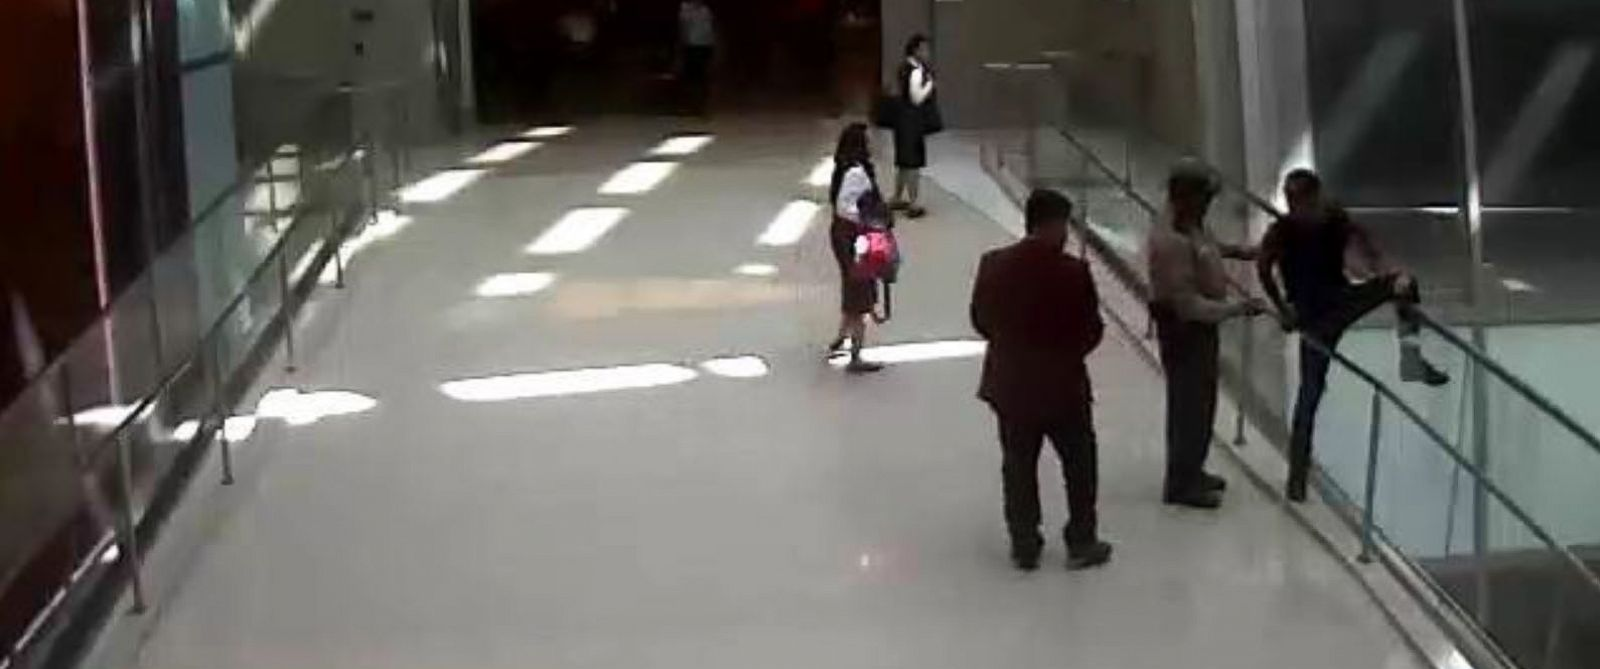 PHOTO: John Solis, a Los Angeles International Airport security officer, prevented a 25-year-old man from jumping from a pedestrian bridge in the airport.